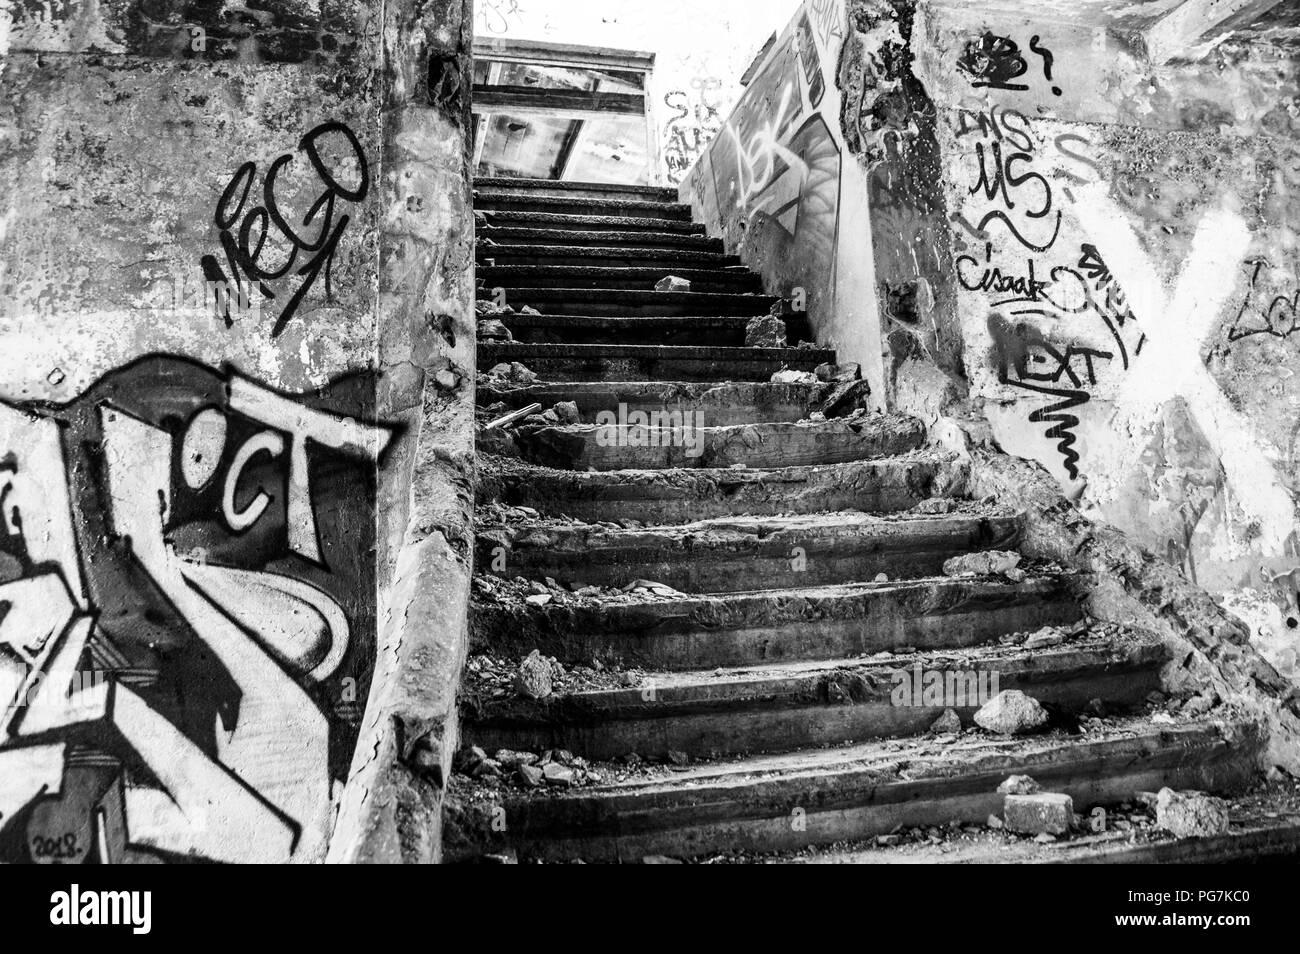 Staircase in abandonned building, smell like disarray, desolation and shanytown. - Stock Image